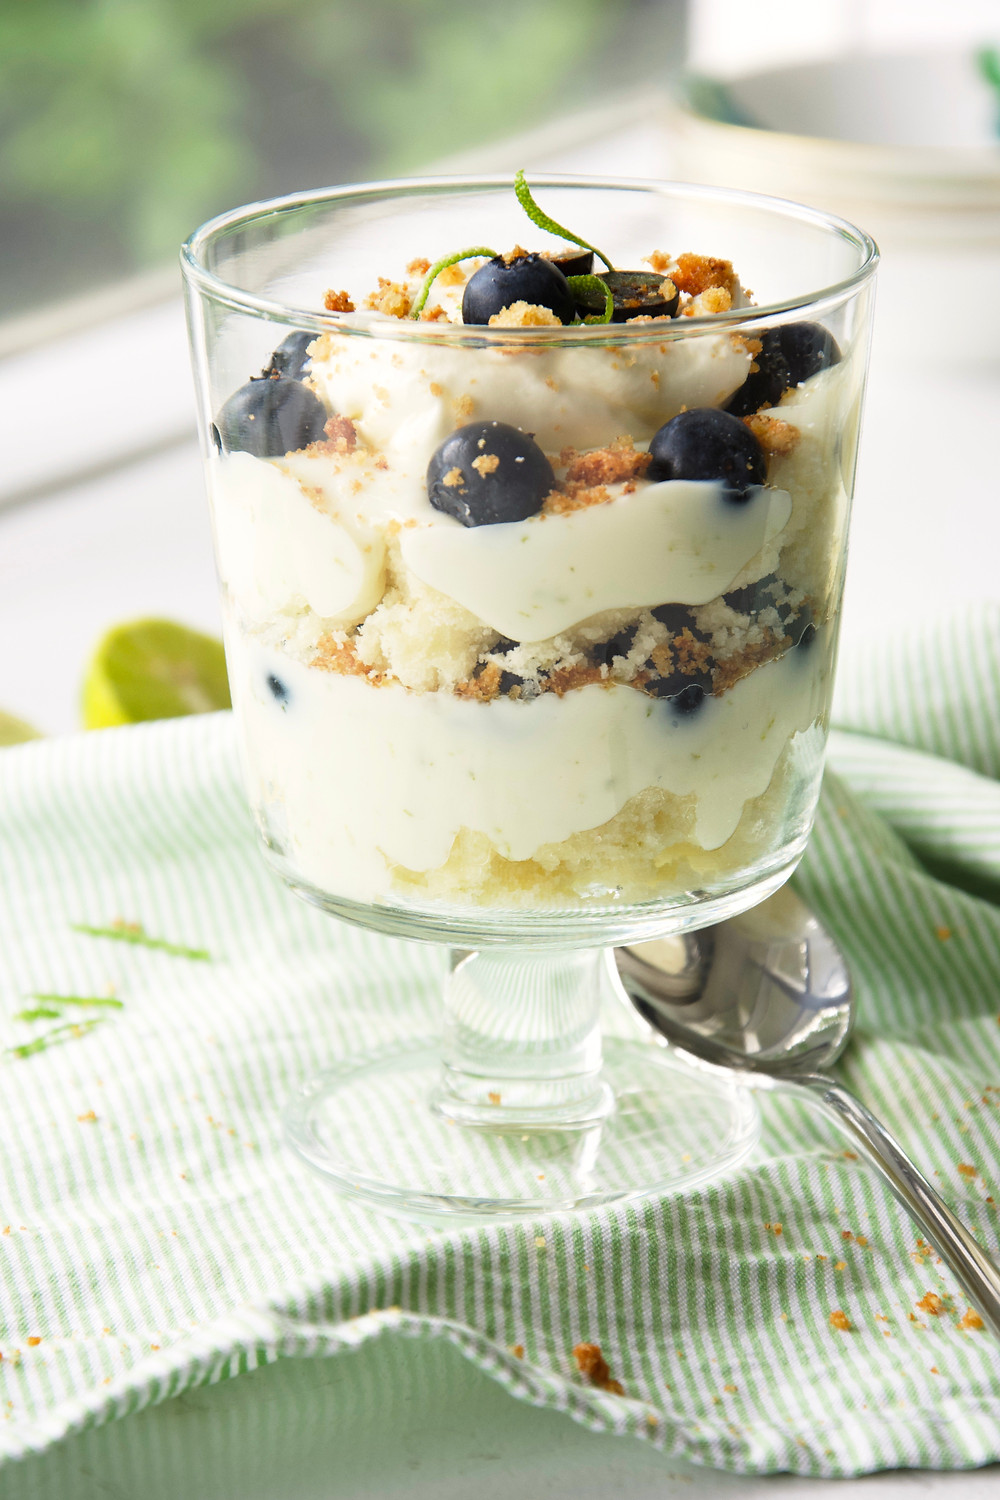 Individual Key Lime Pie Trifles with layers of cake, key lime pie filling and blueberries.